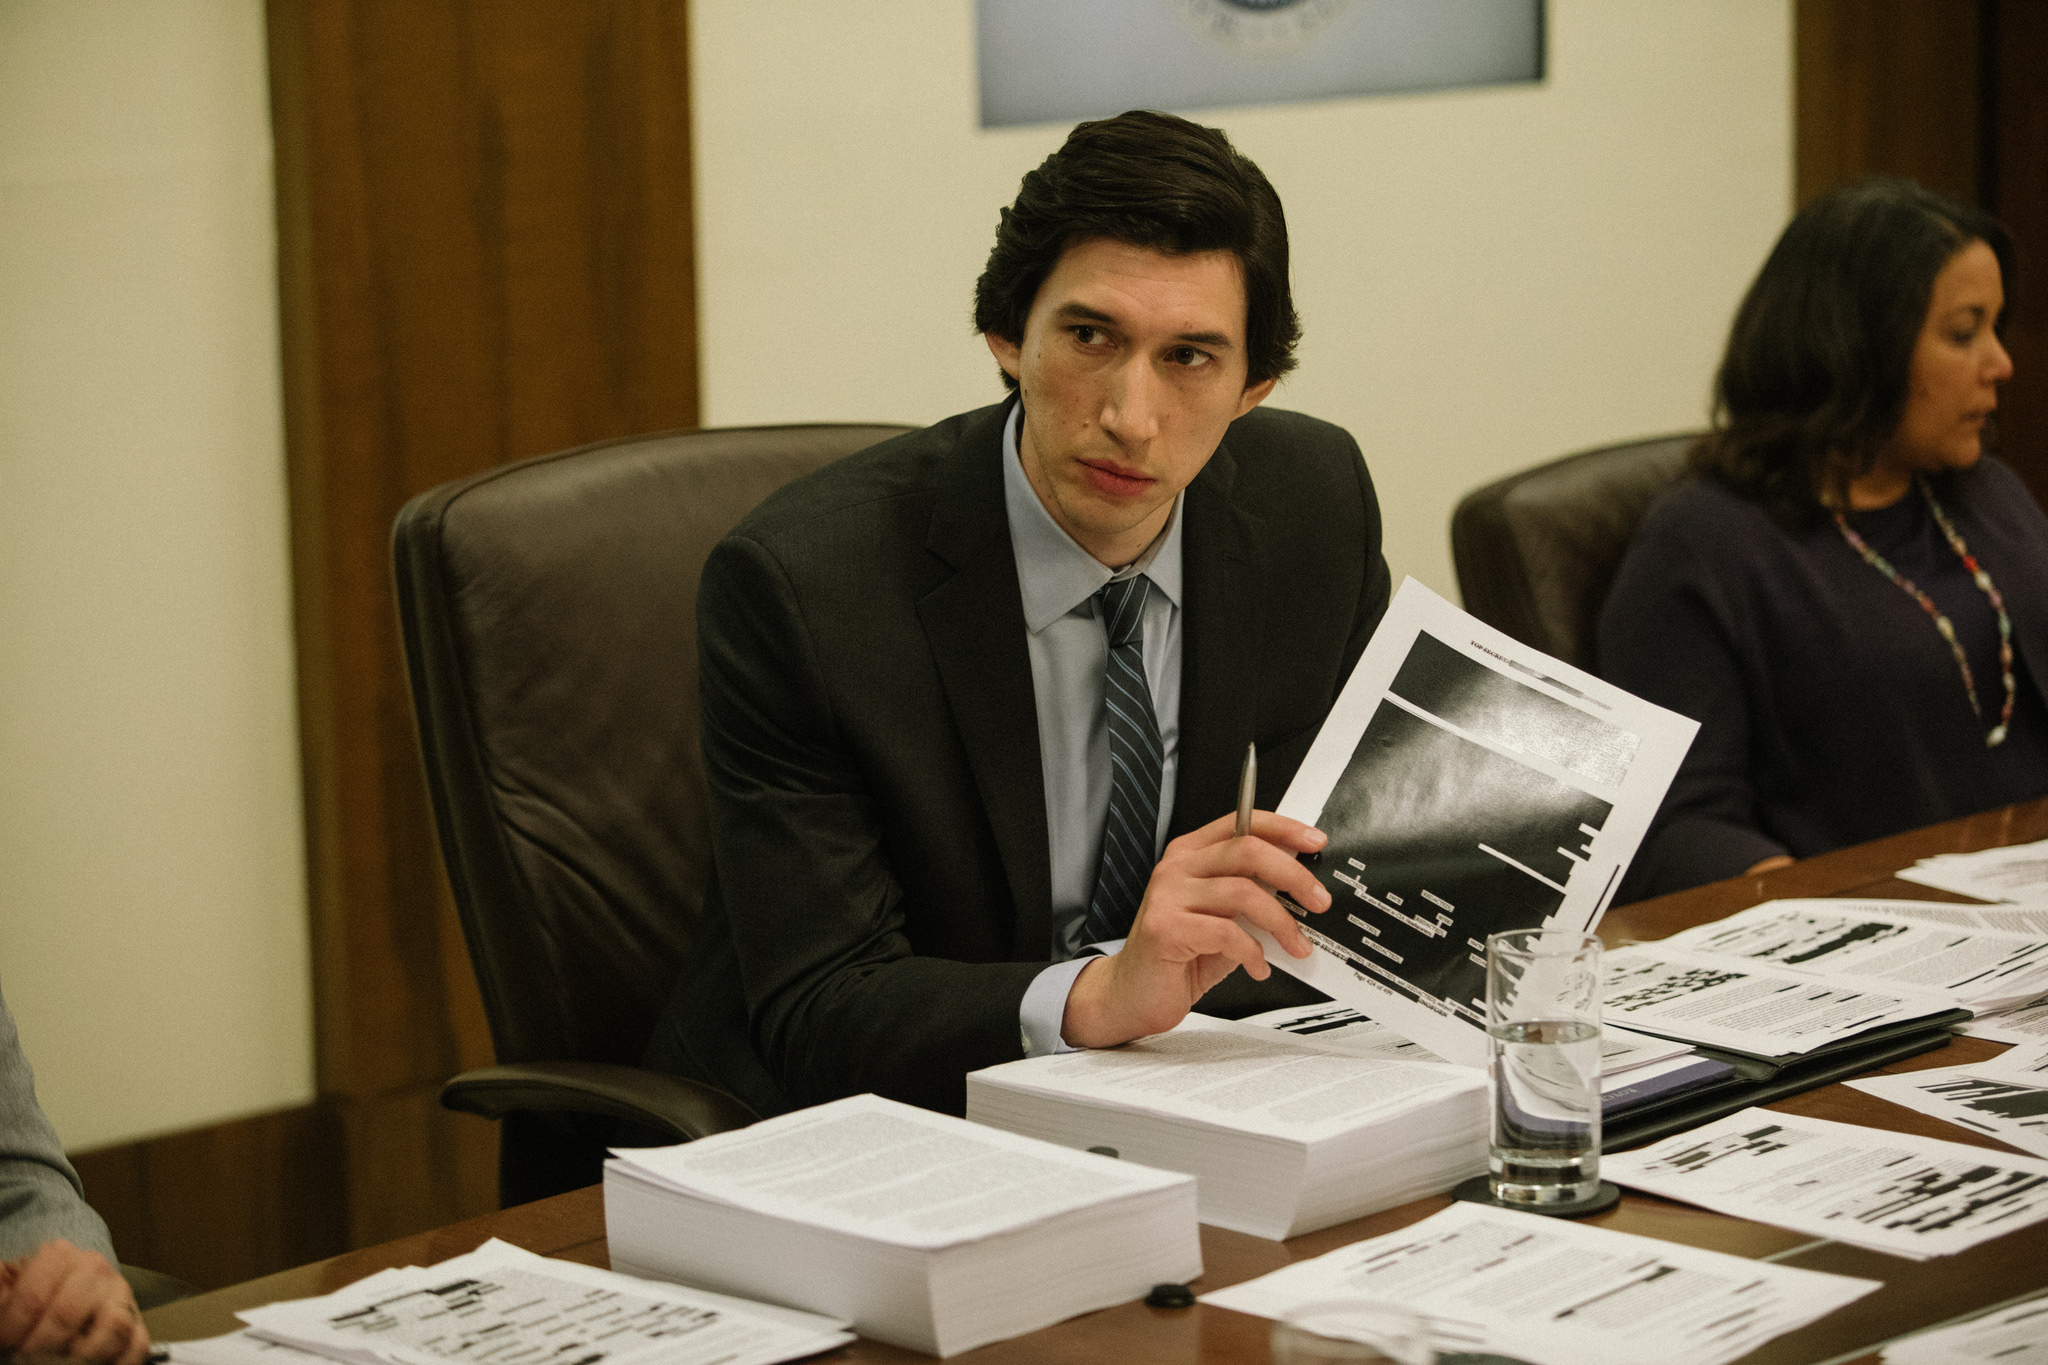 The fury of Adam Driver scorches America's legacy in The Report